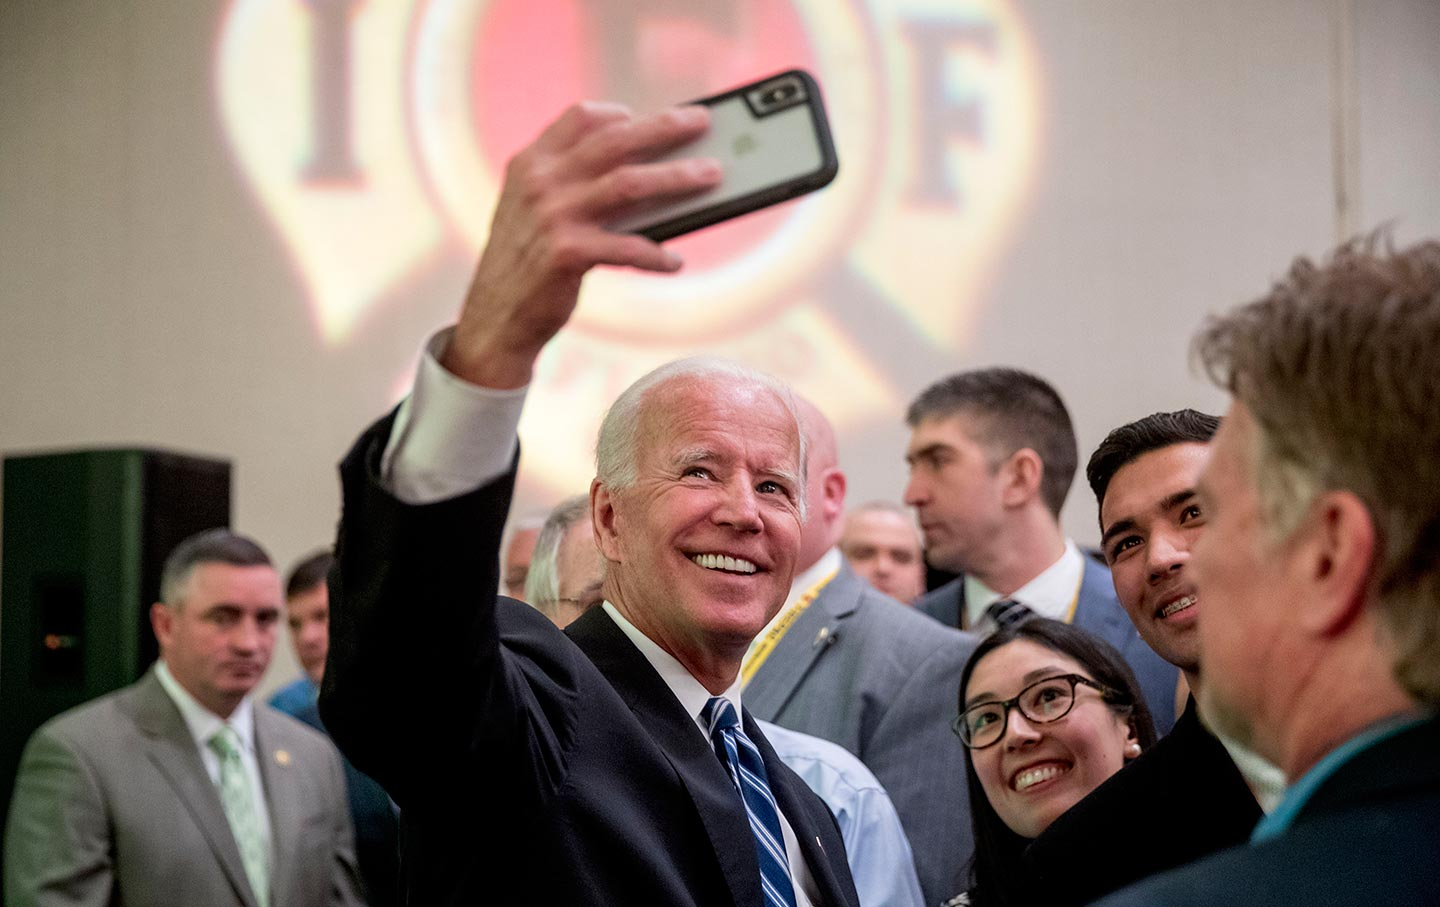 Joe Biden takes a selfie